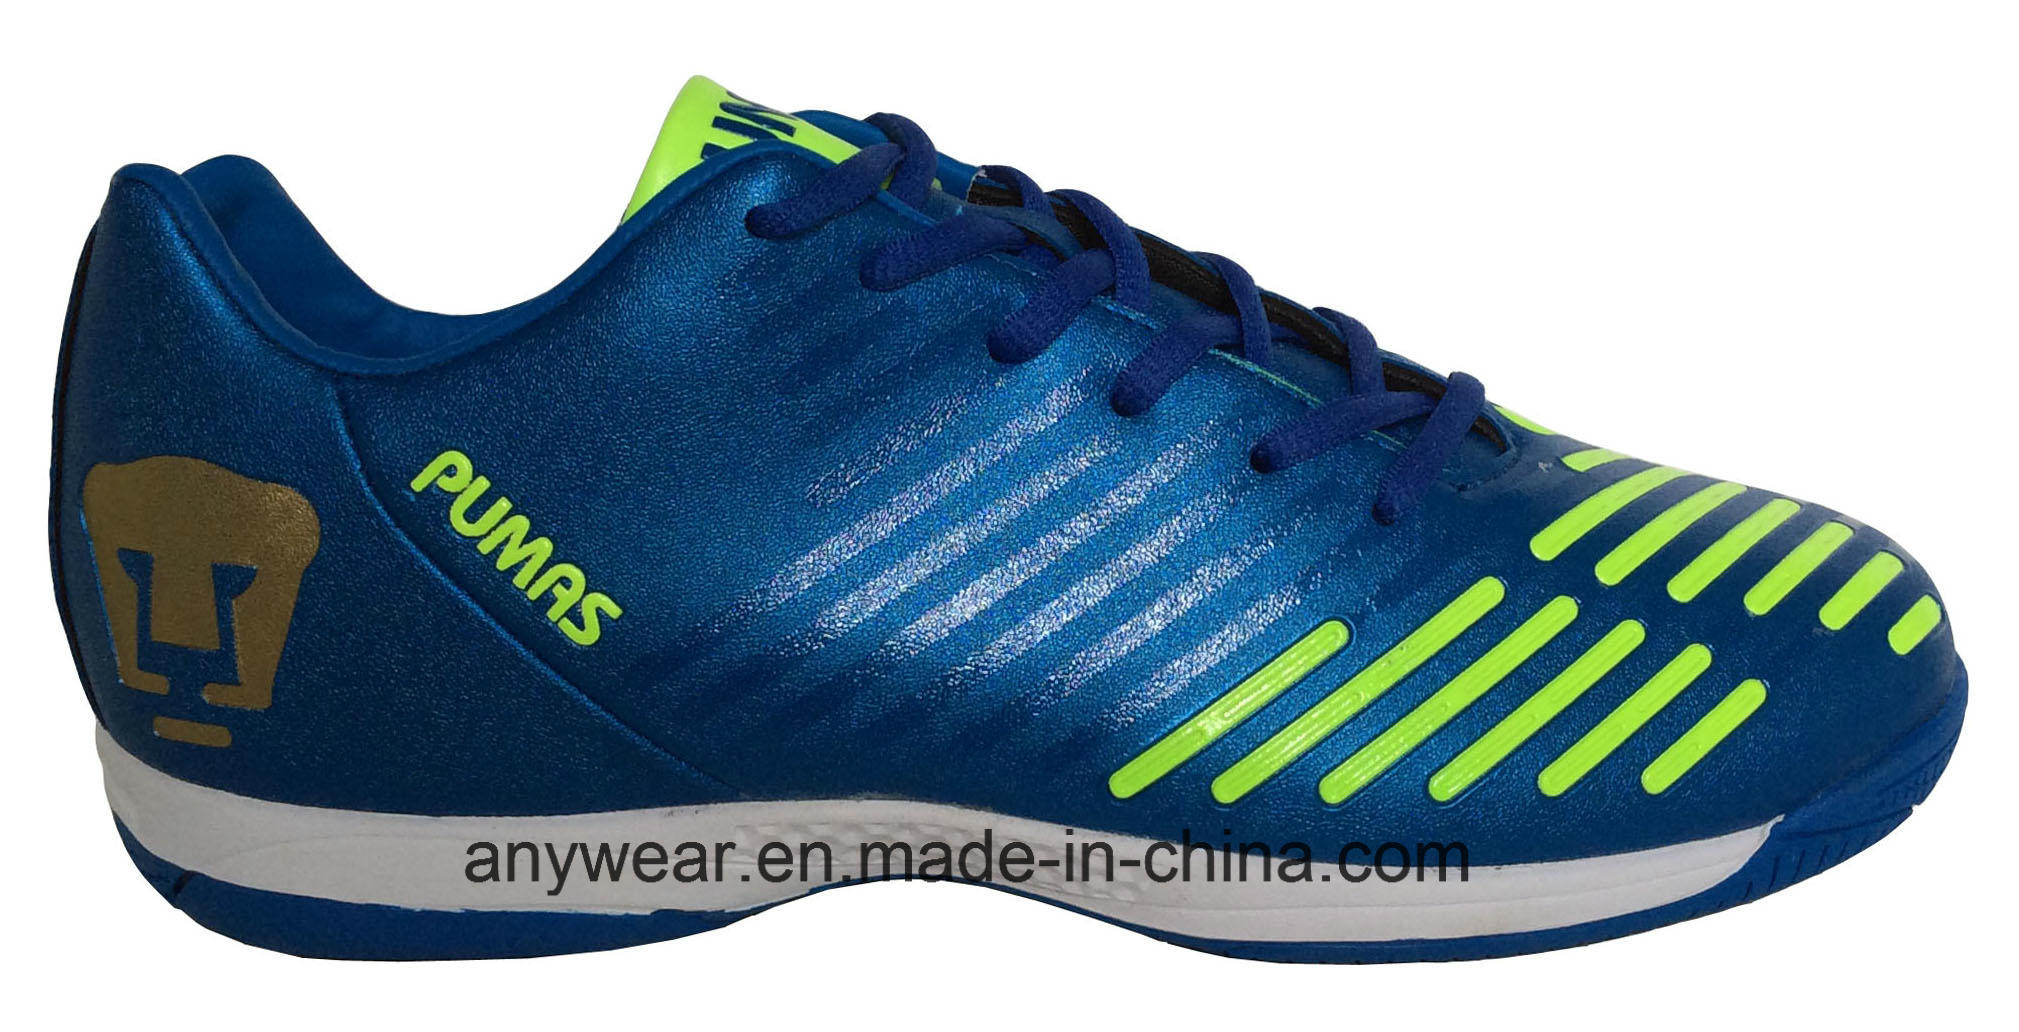 China Men Outdoor Sports Indoor Soccer Shoes (815-9358)